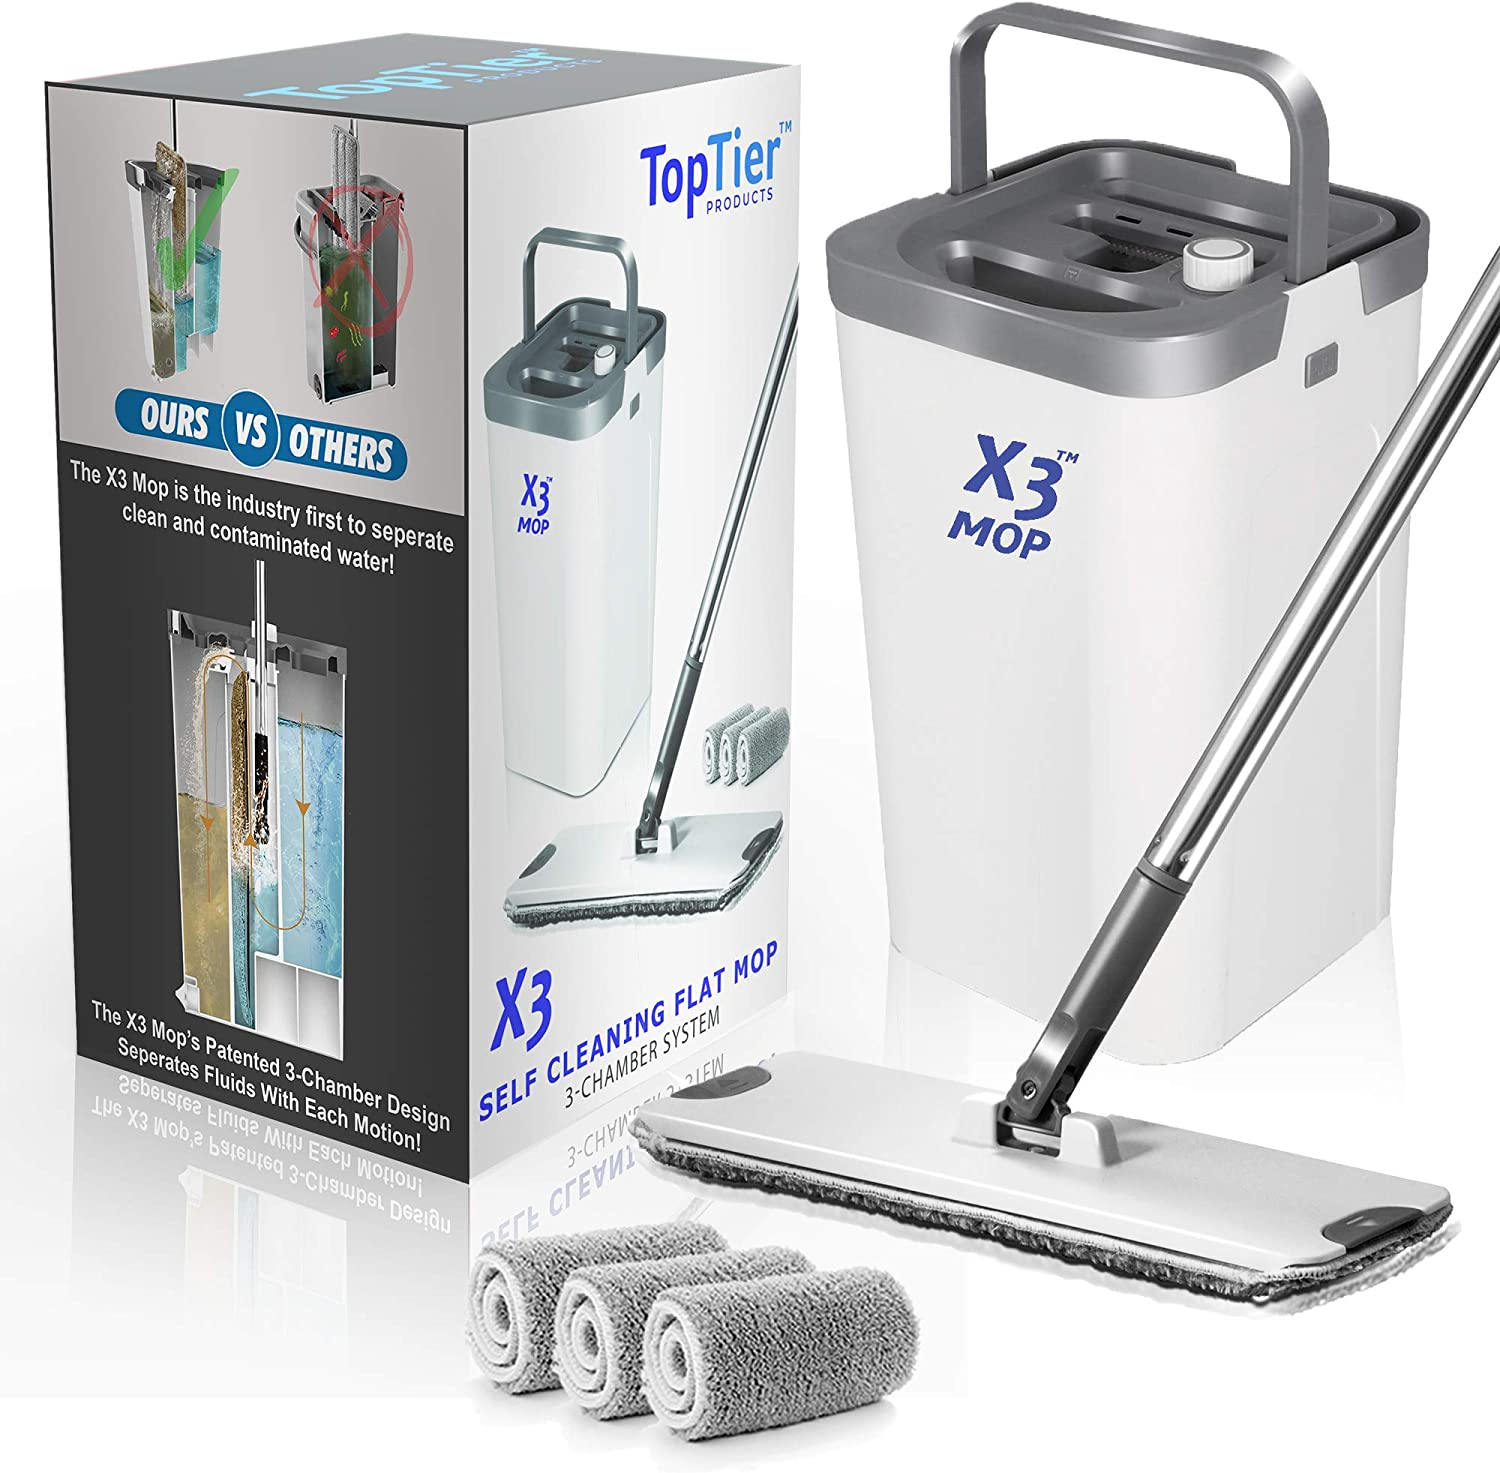 Top Tier Products X3 Flat Mop and Bucket System, 3-Chamber Design, Hands Free Self Cleaning System, 3 Washable & Reusable Microfiber Pads Included